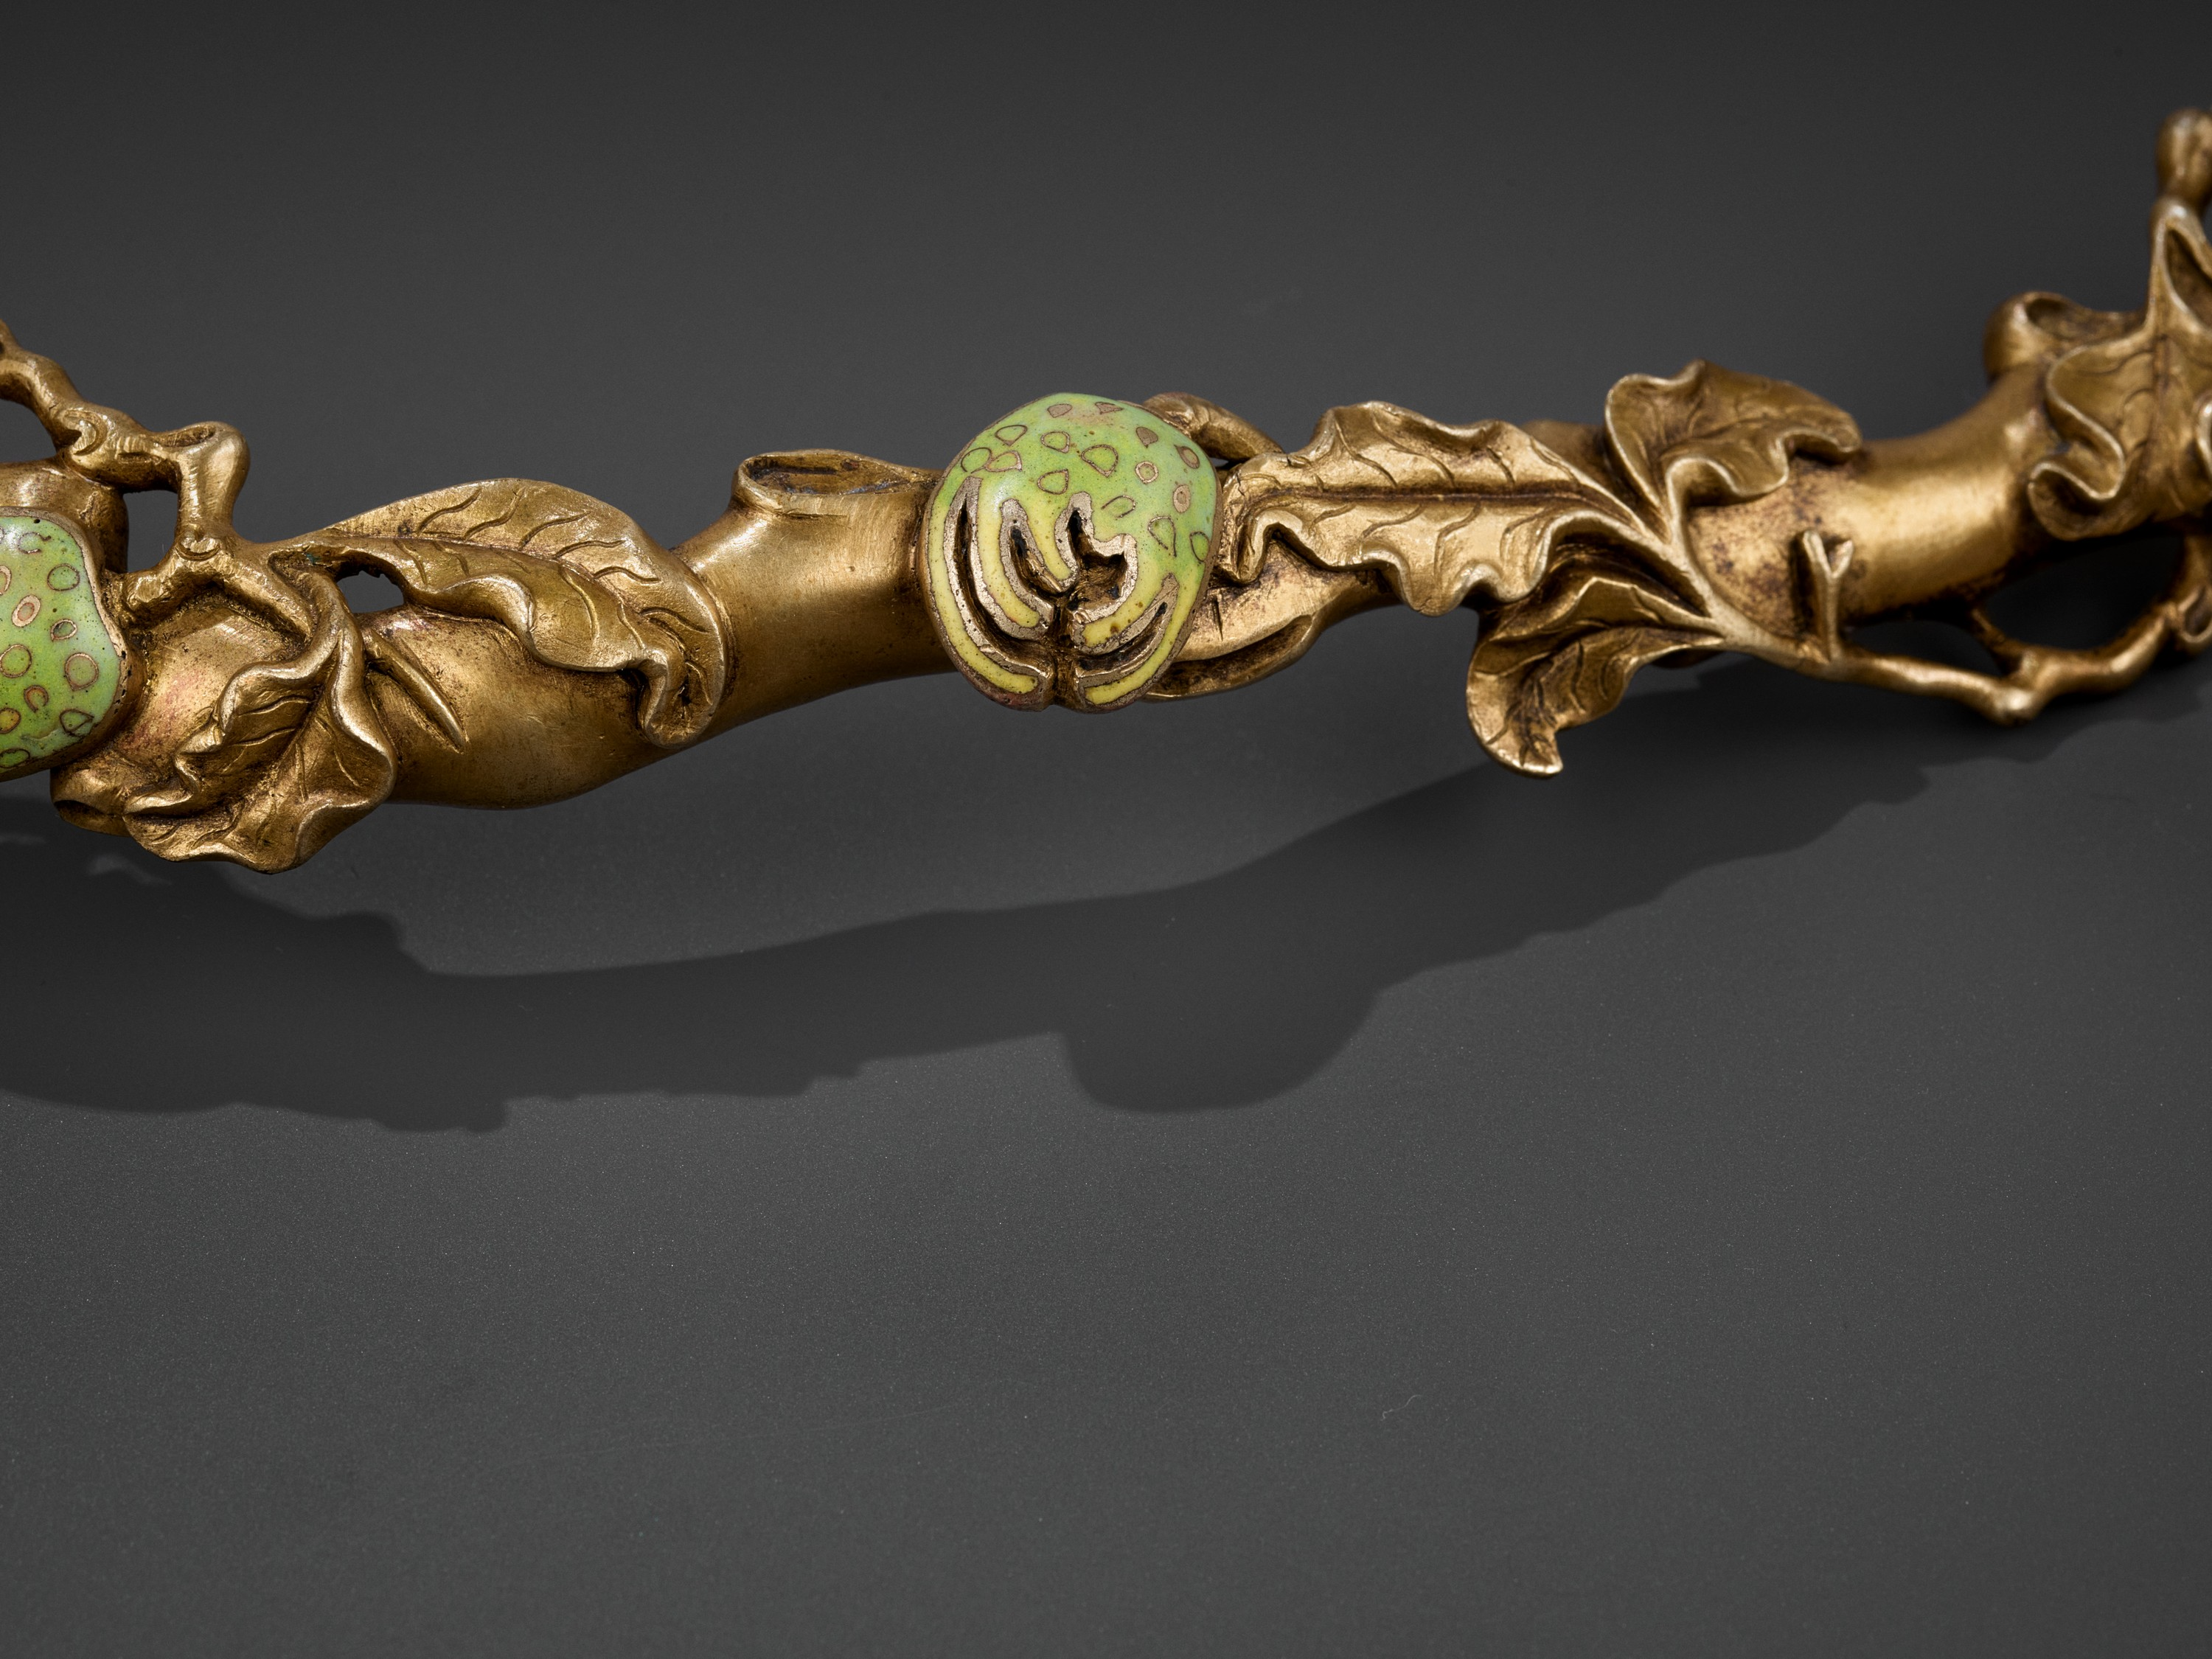 A CHAMPLEVE ENAMEL 'BUDDHA'S HAND' RUYI SCEPTER, QING DYNASTY - Image 2 of 11